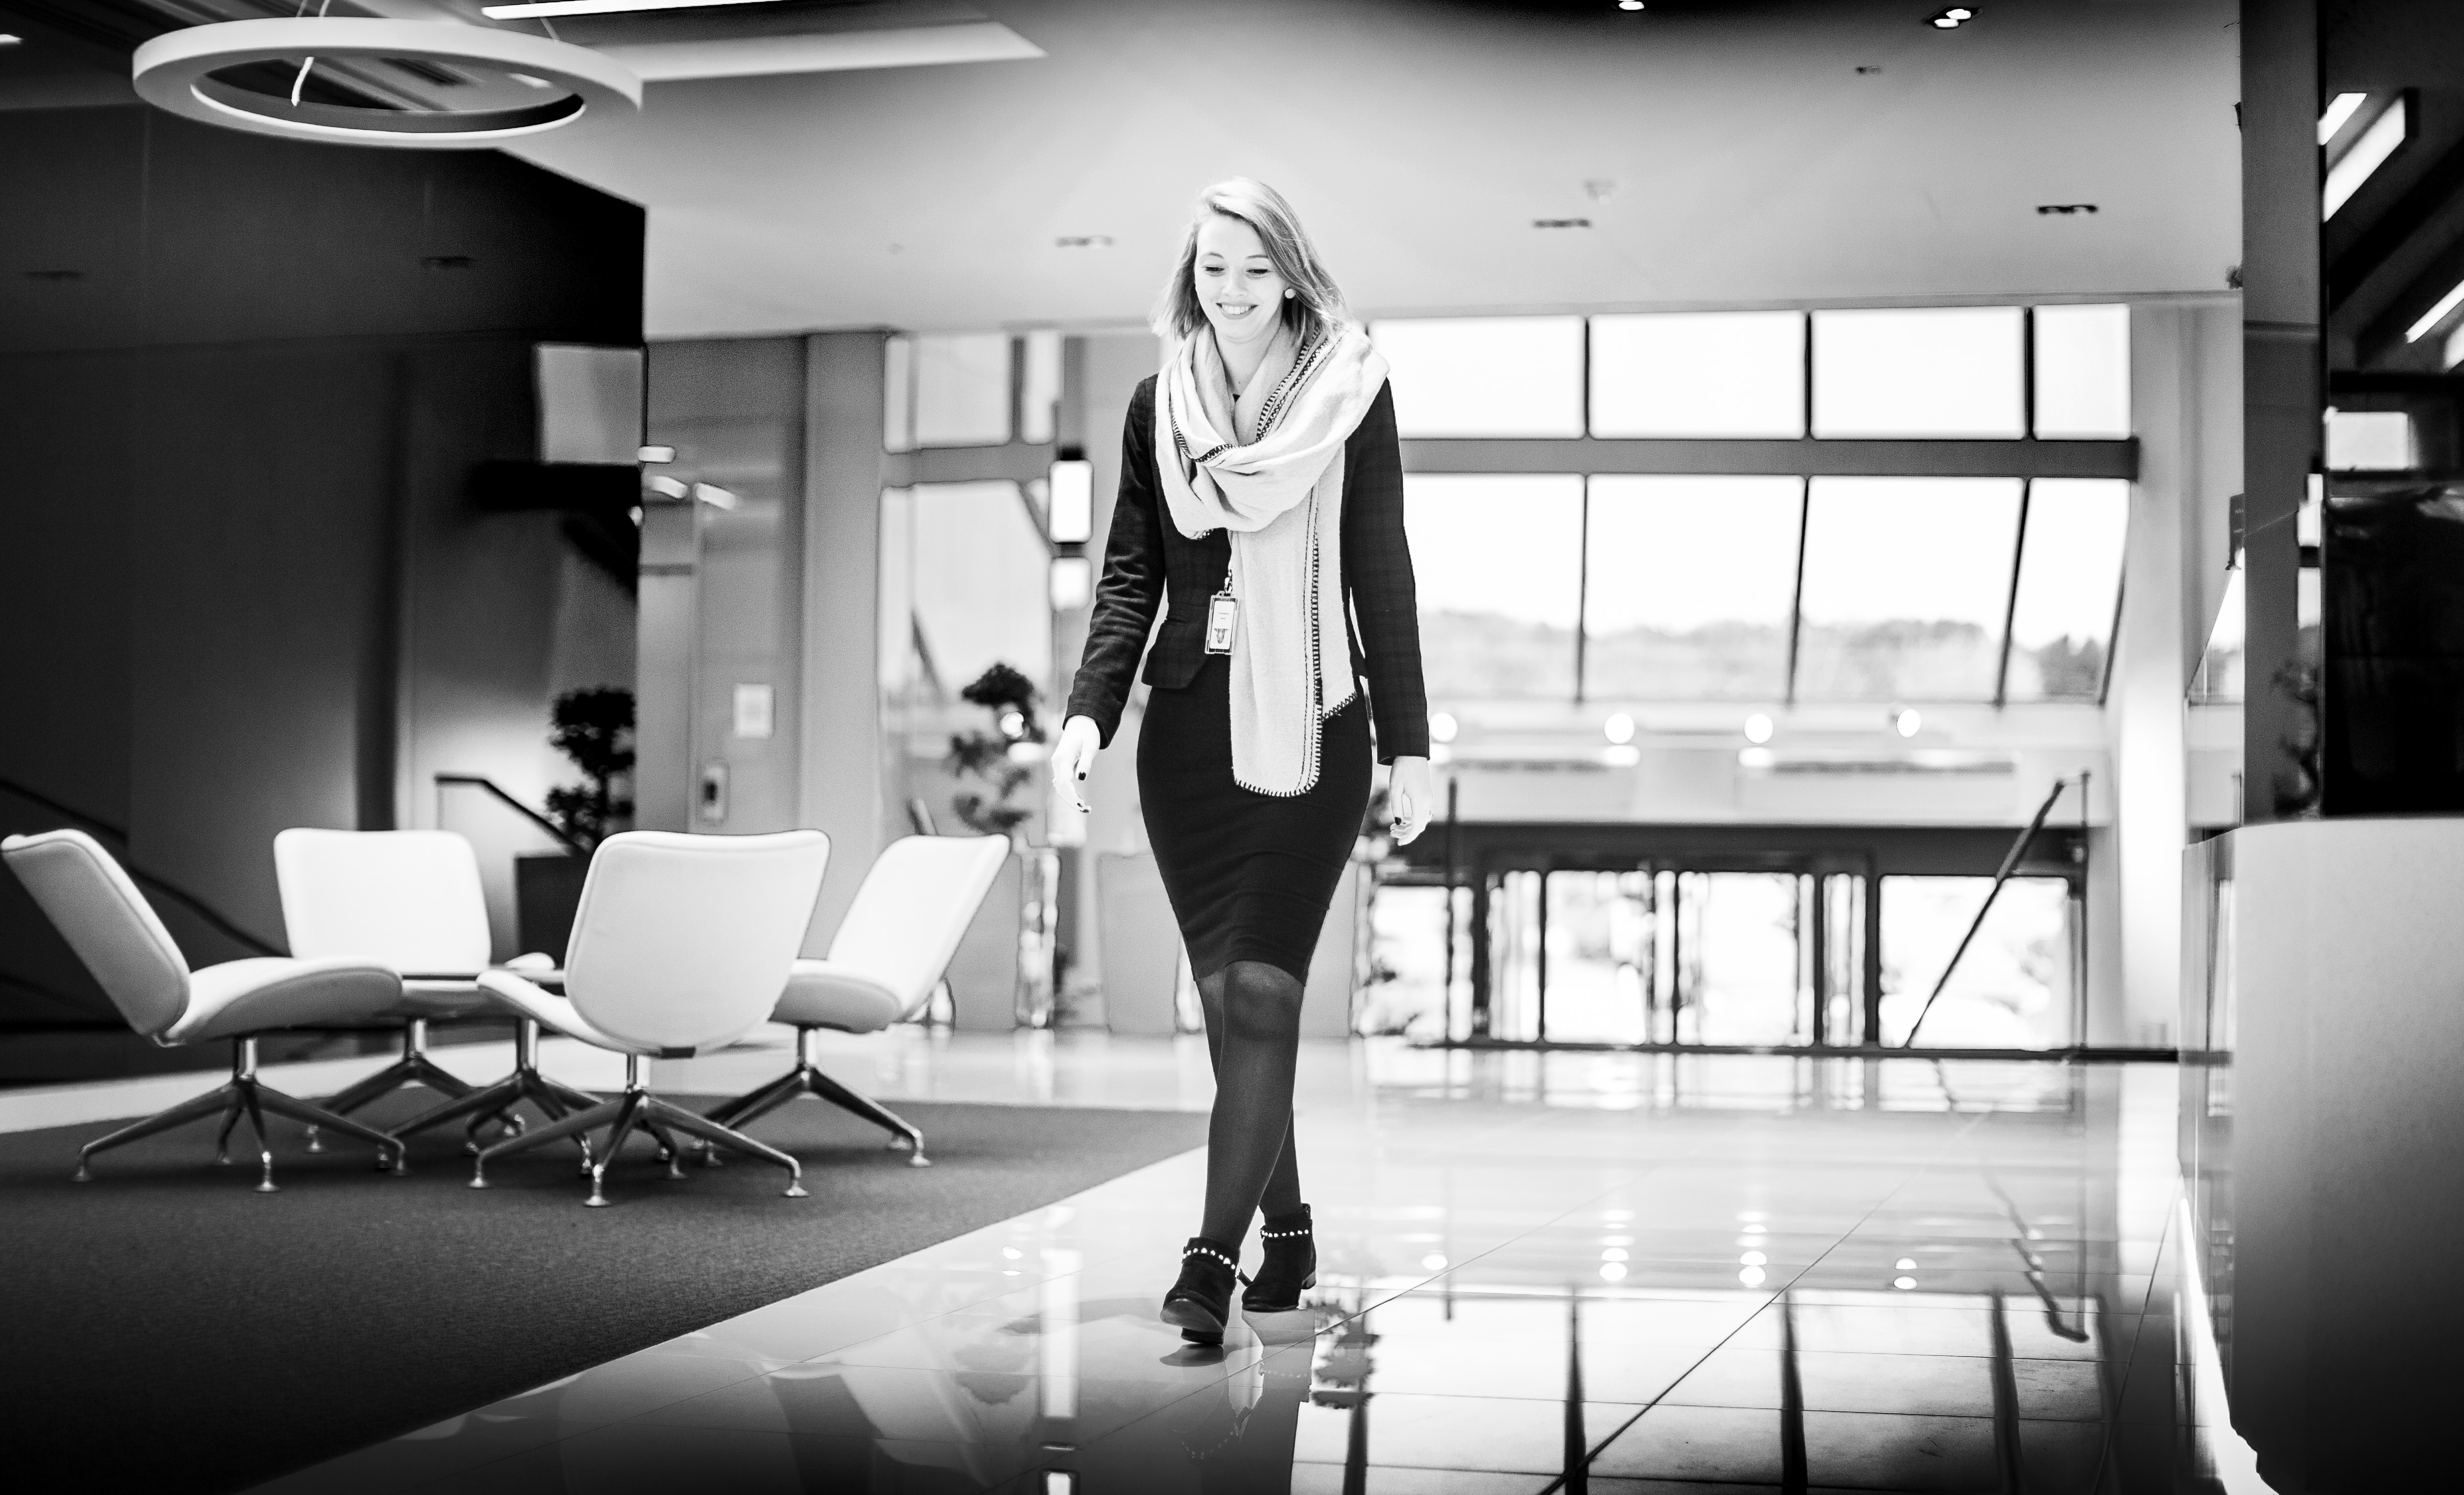 Woman walking across an office space at Honda